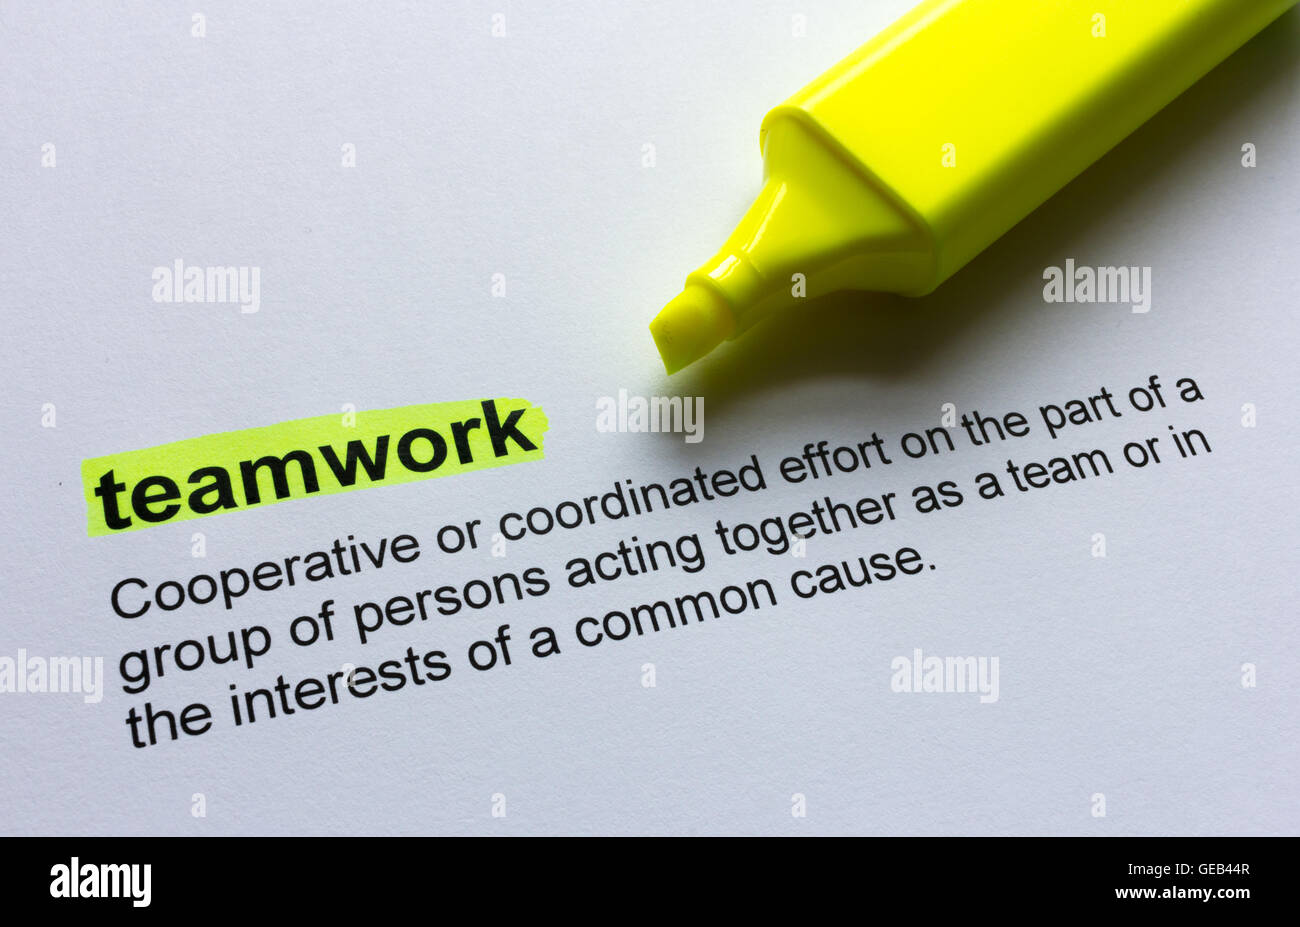 Definition of teamwork, highlighted in colour. - Stock Image